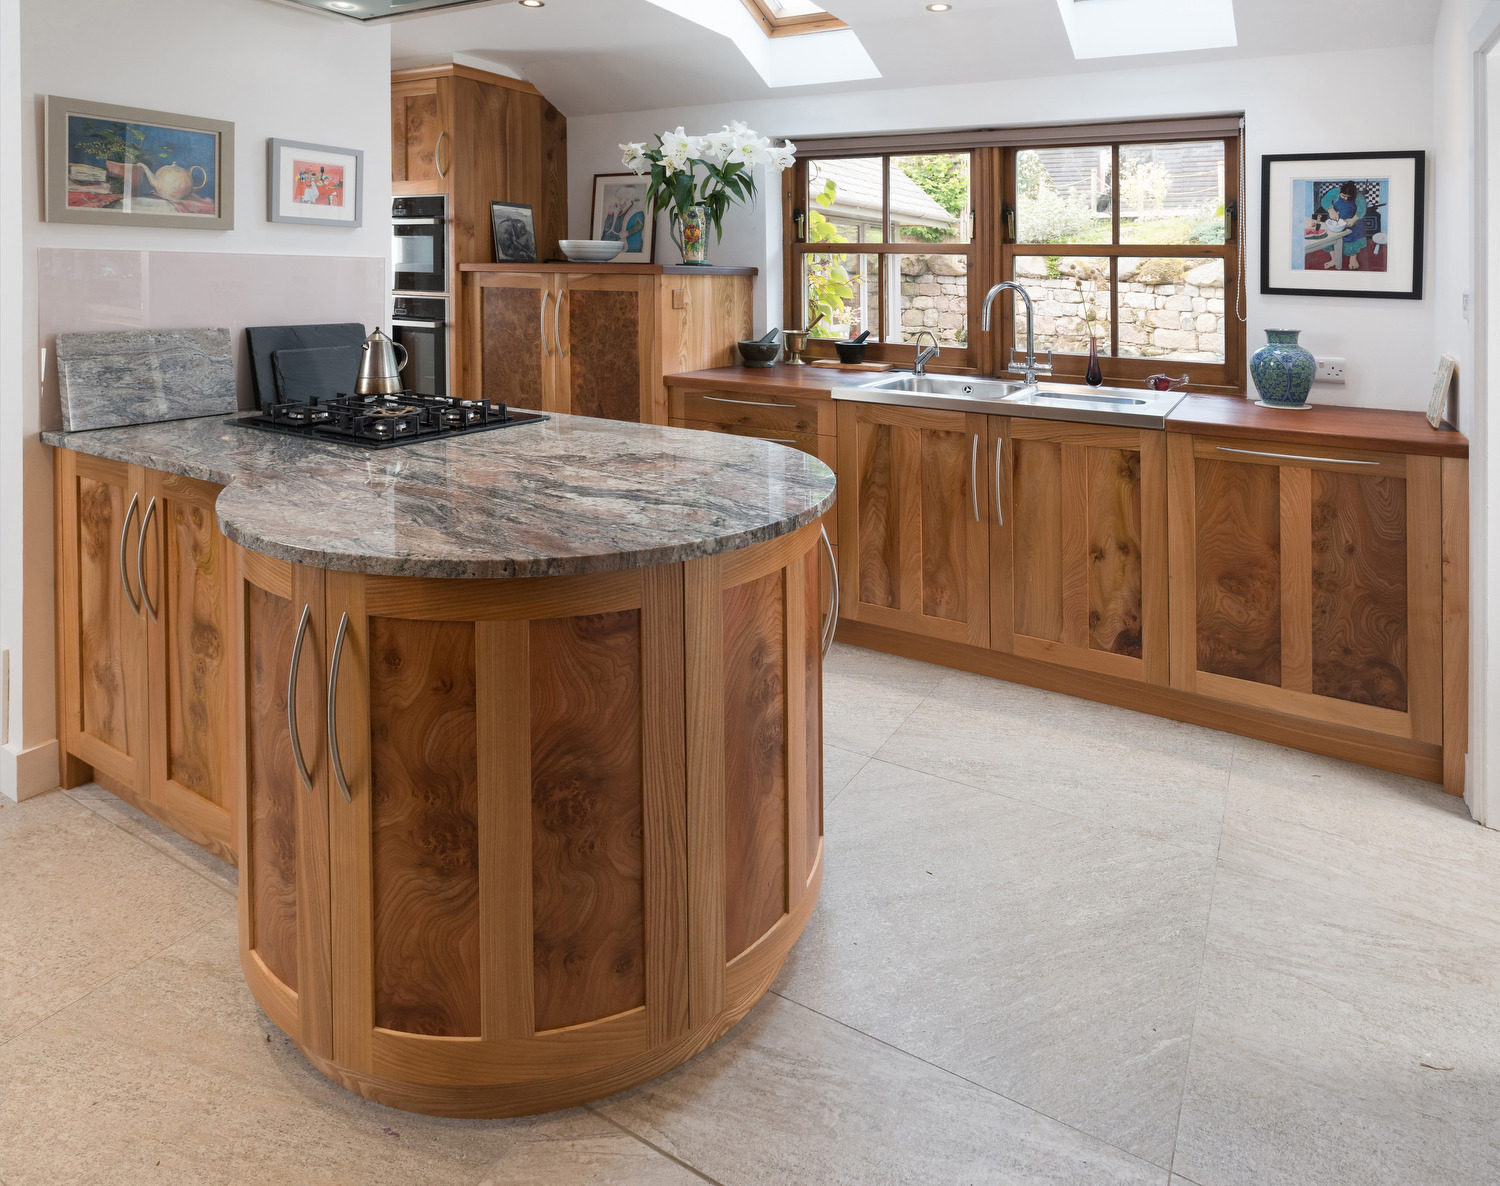 Curve Craft Curved Cabinet Doors Kitchens And Islands